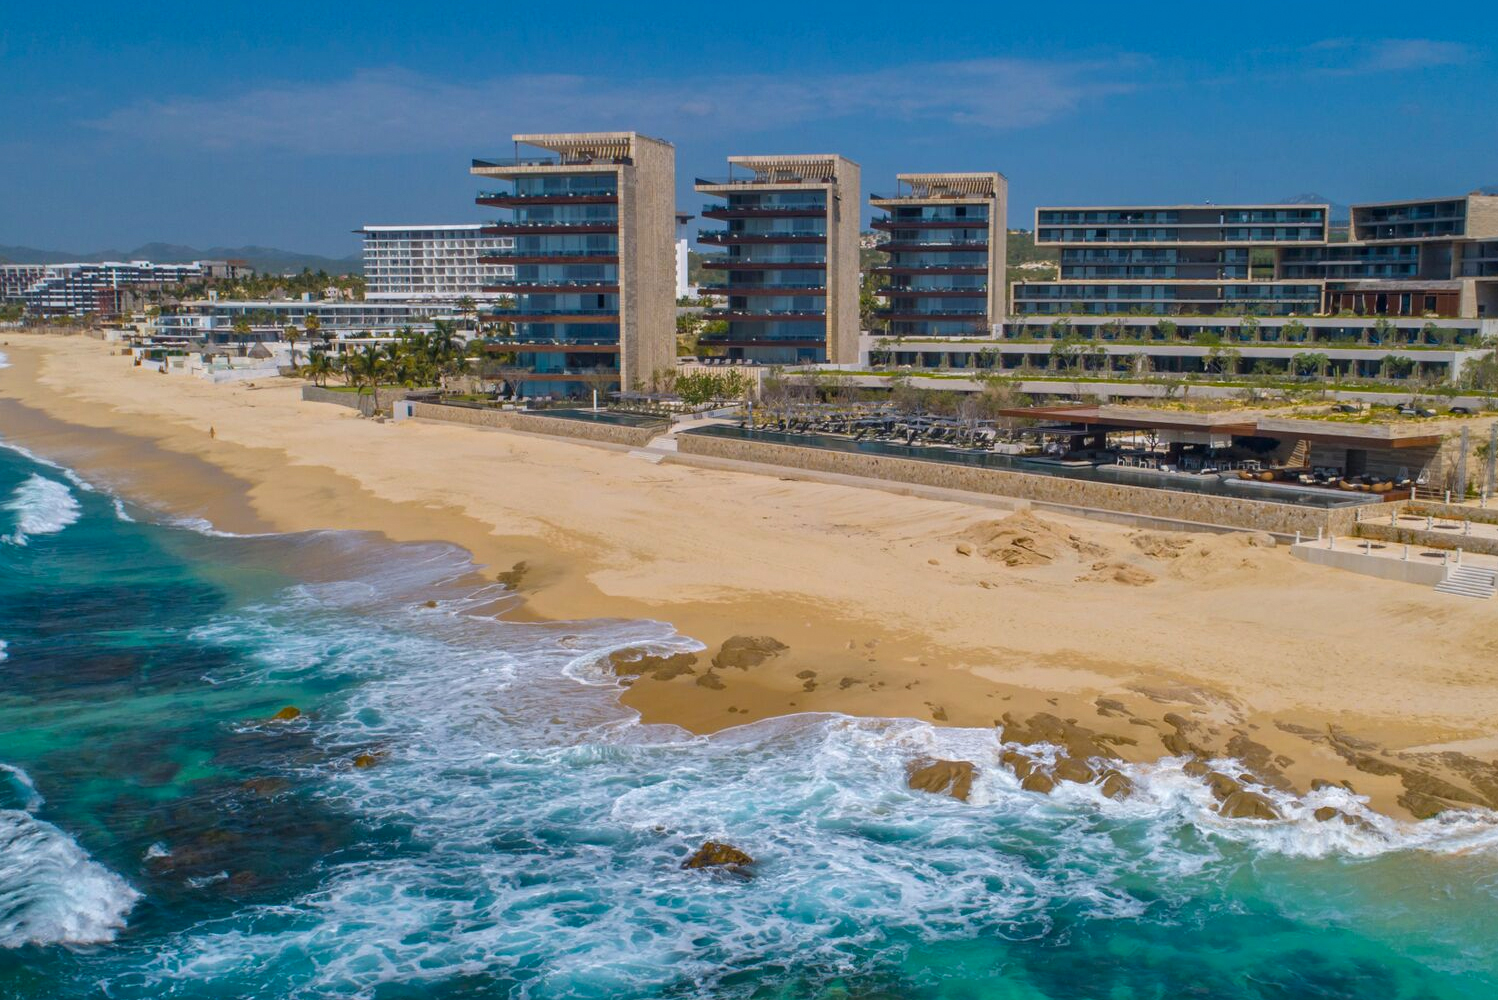 The 128-room luxury resort will pay tribute to Baja California, both in its design and guest experience.